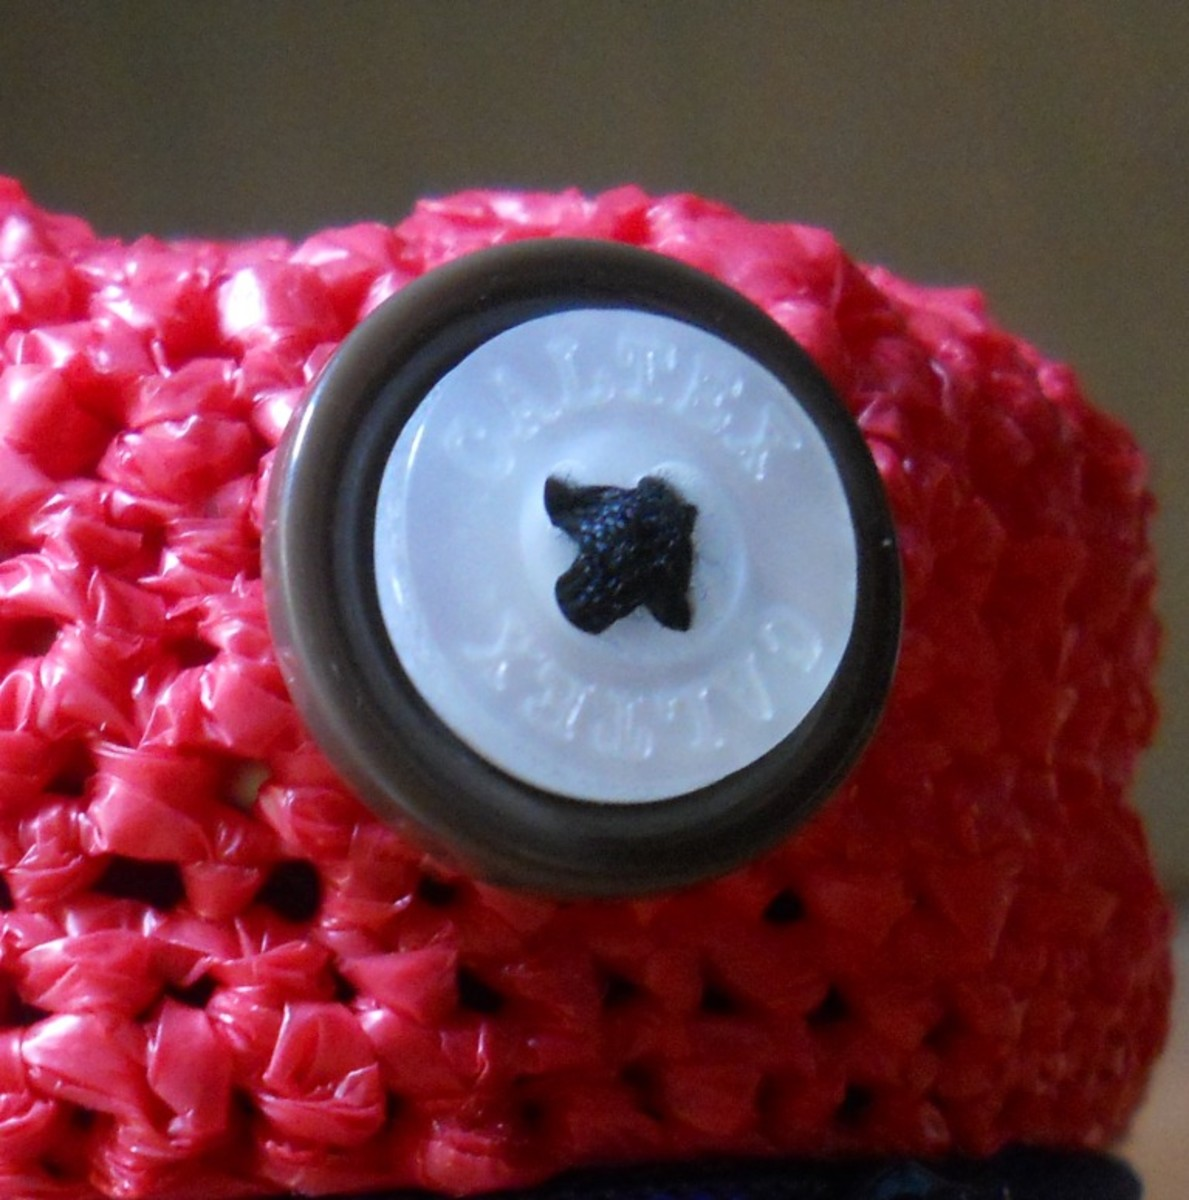 Molih's eyes consist of two buttons sewed together.